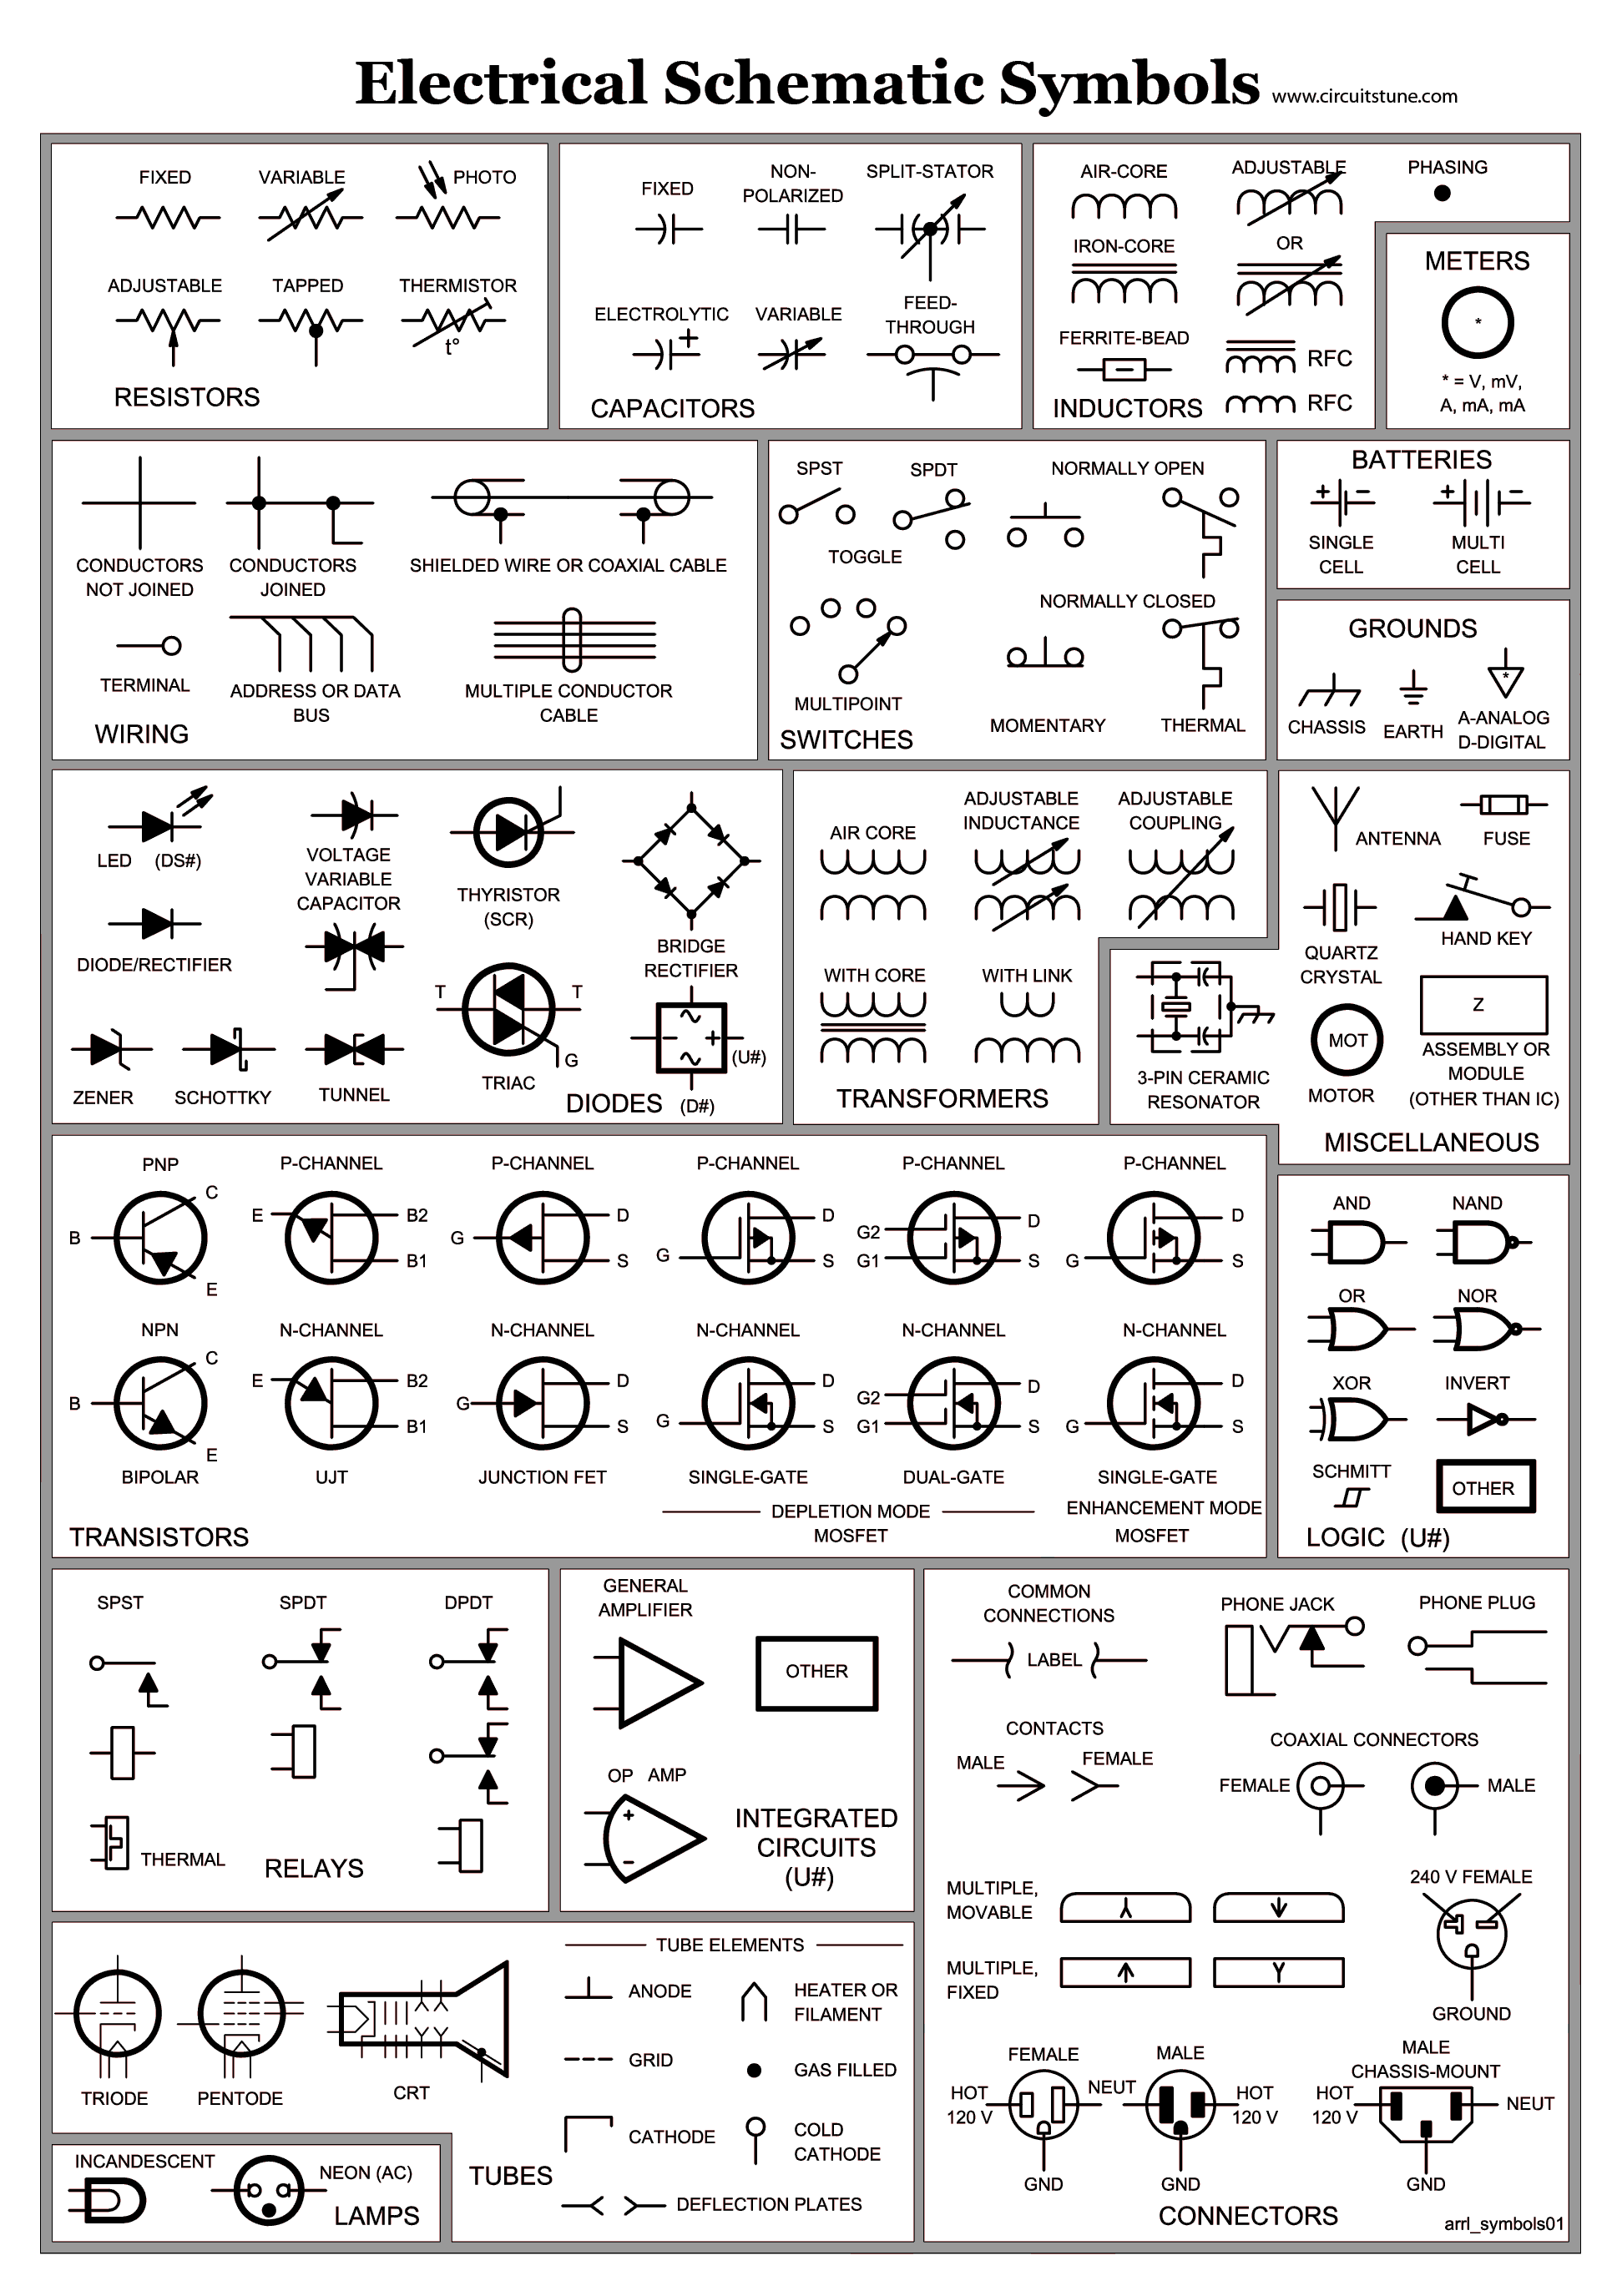 schematic drawings symbols wiring diagram Wiring Diagram Symbols Chart schematic diagrams electrical wire diagram symbols wiring diagram automotive wiring diagram symbols wiring diagrams scwelectrical schematic